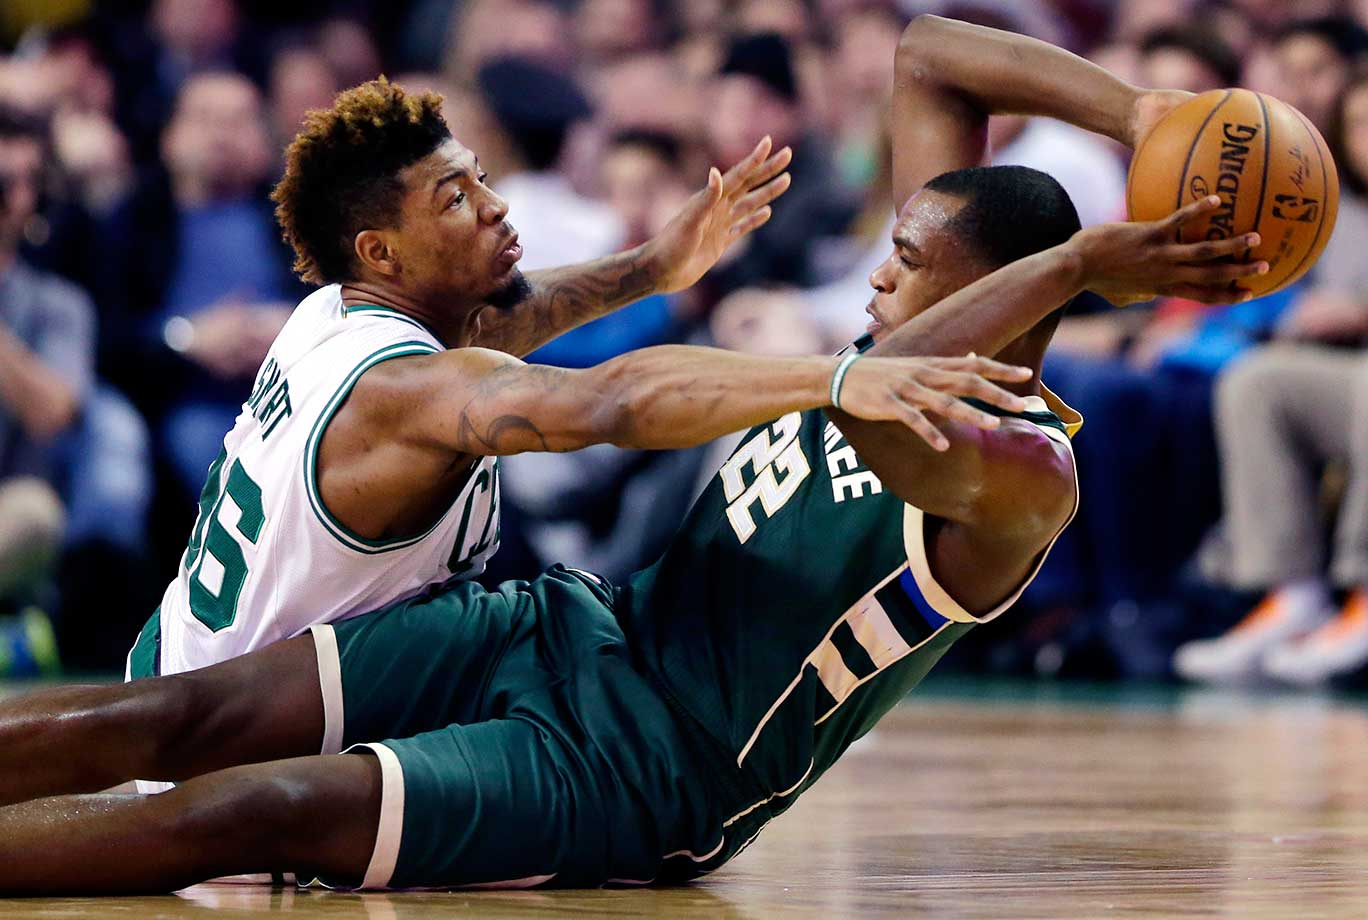 Milwaukee's Khris Middleton tries to pass while pressured by Marcus Smart of Boston.